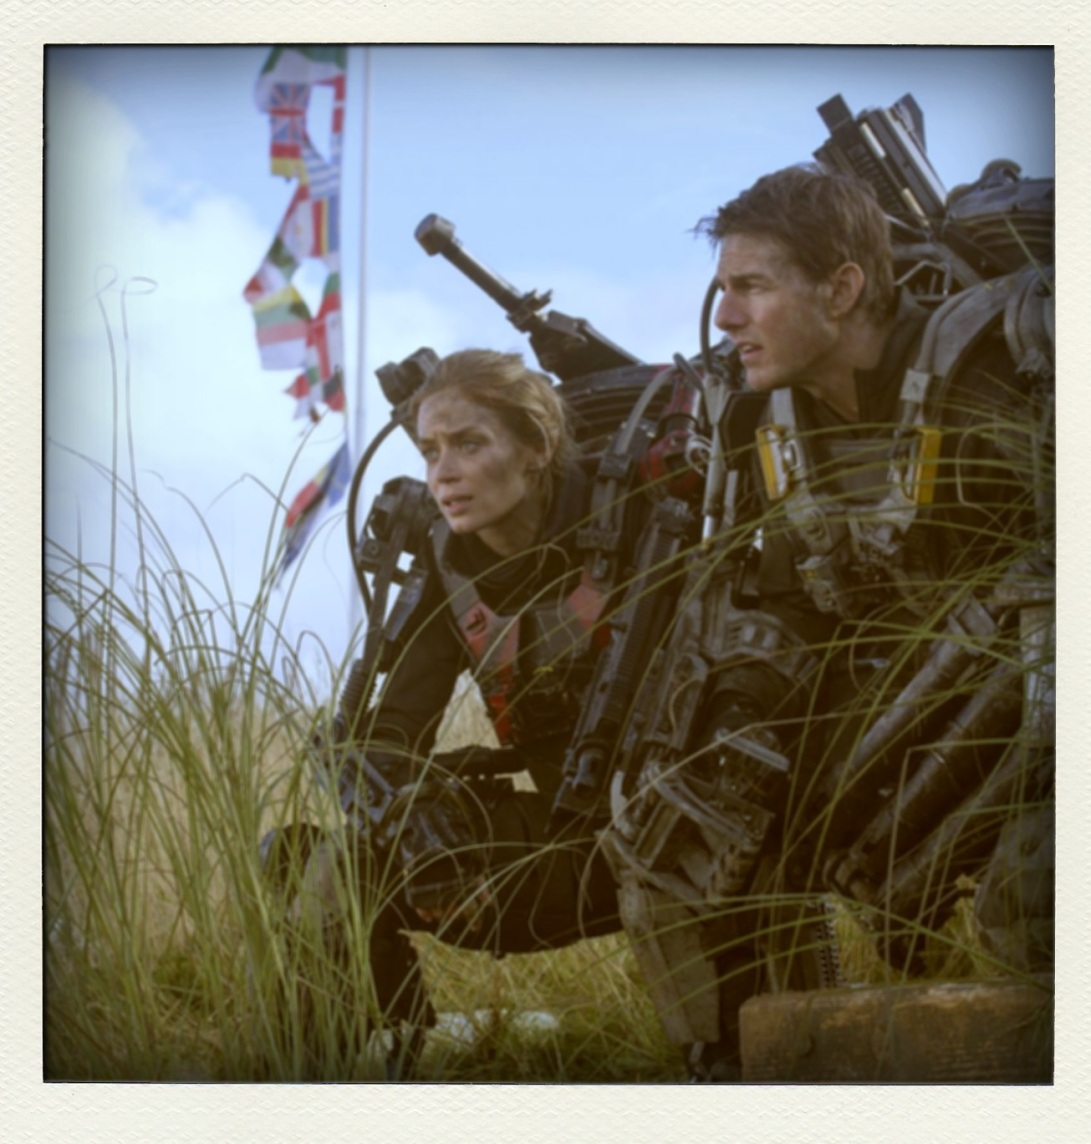 edge of tomorrow @ www.cinemascream.co.uk